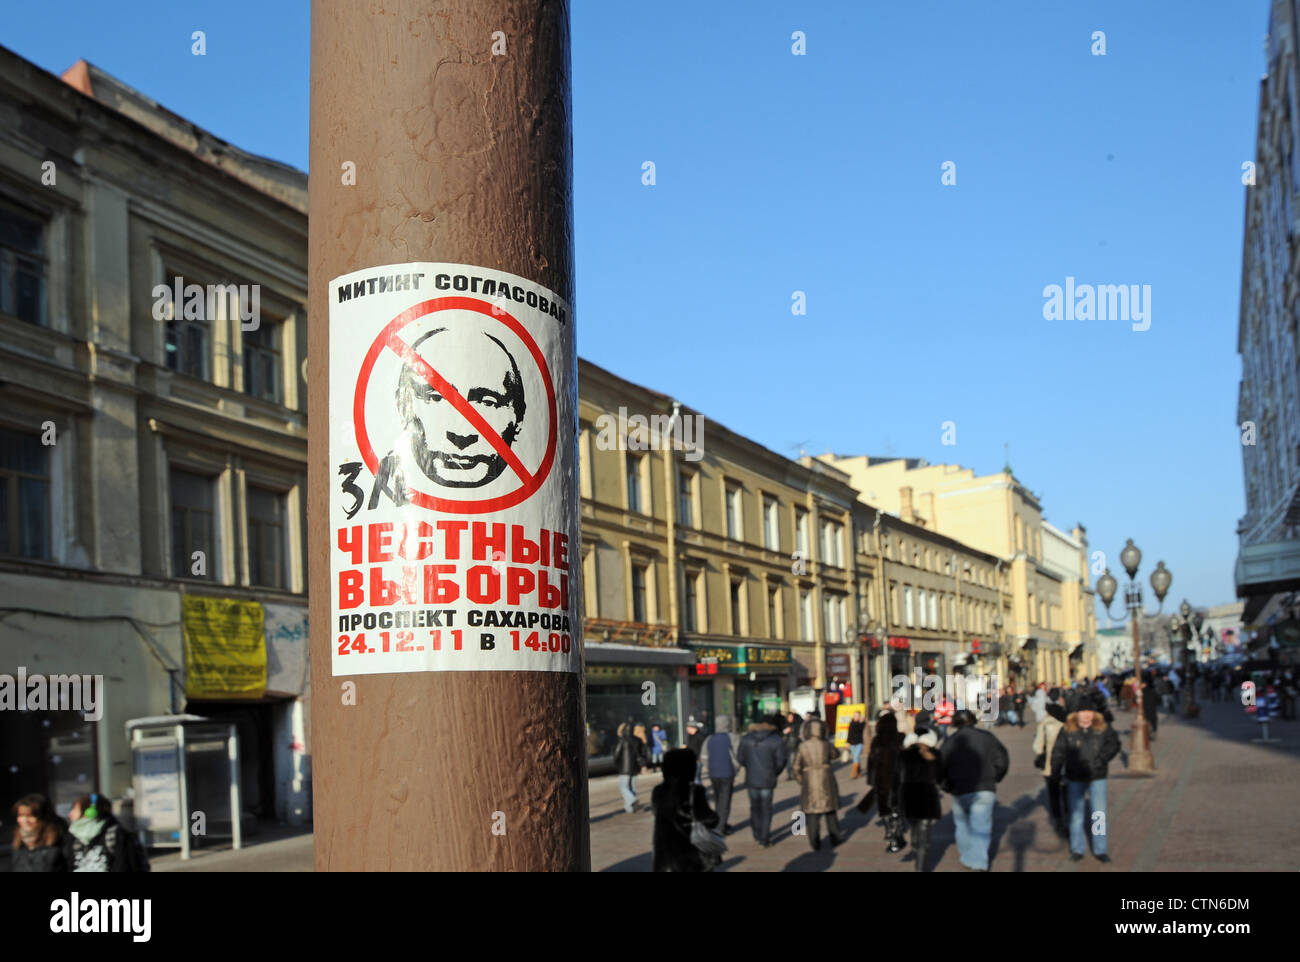 Anti-Putin sticker in Novy Arbat in Moscow calling for a protest against Putin's reelection as president of - Stock Image